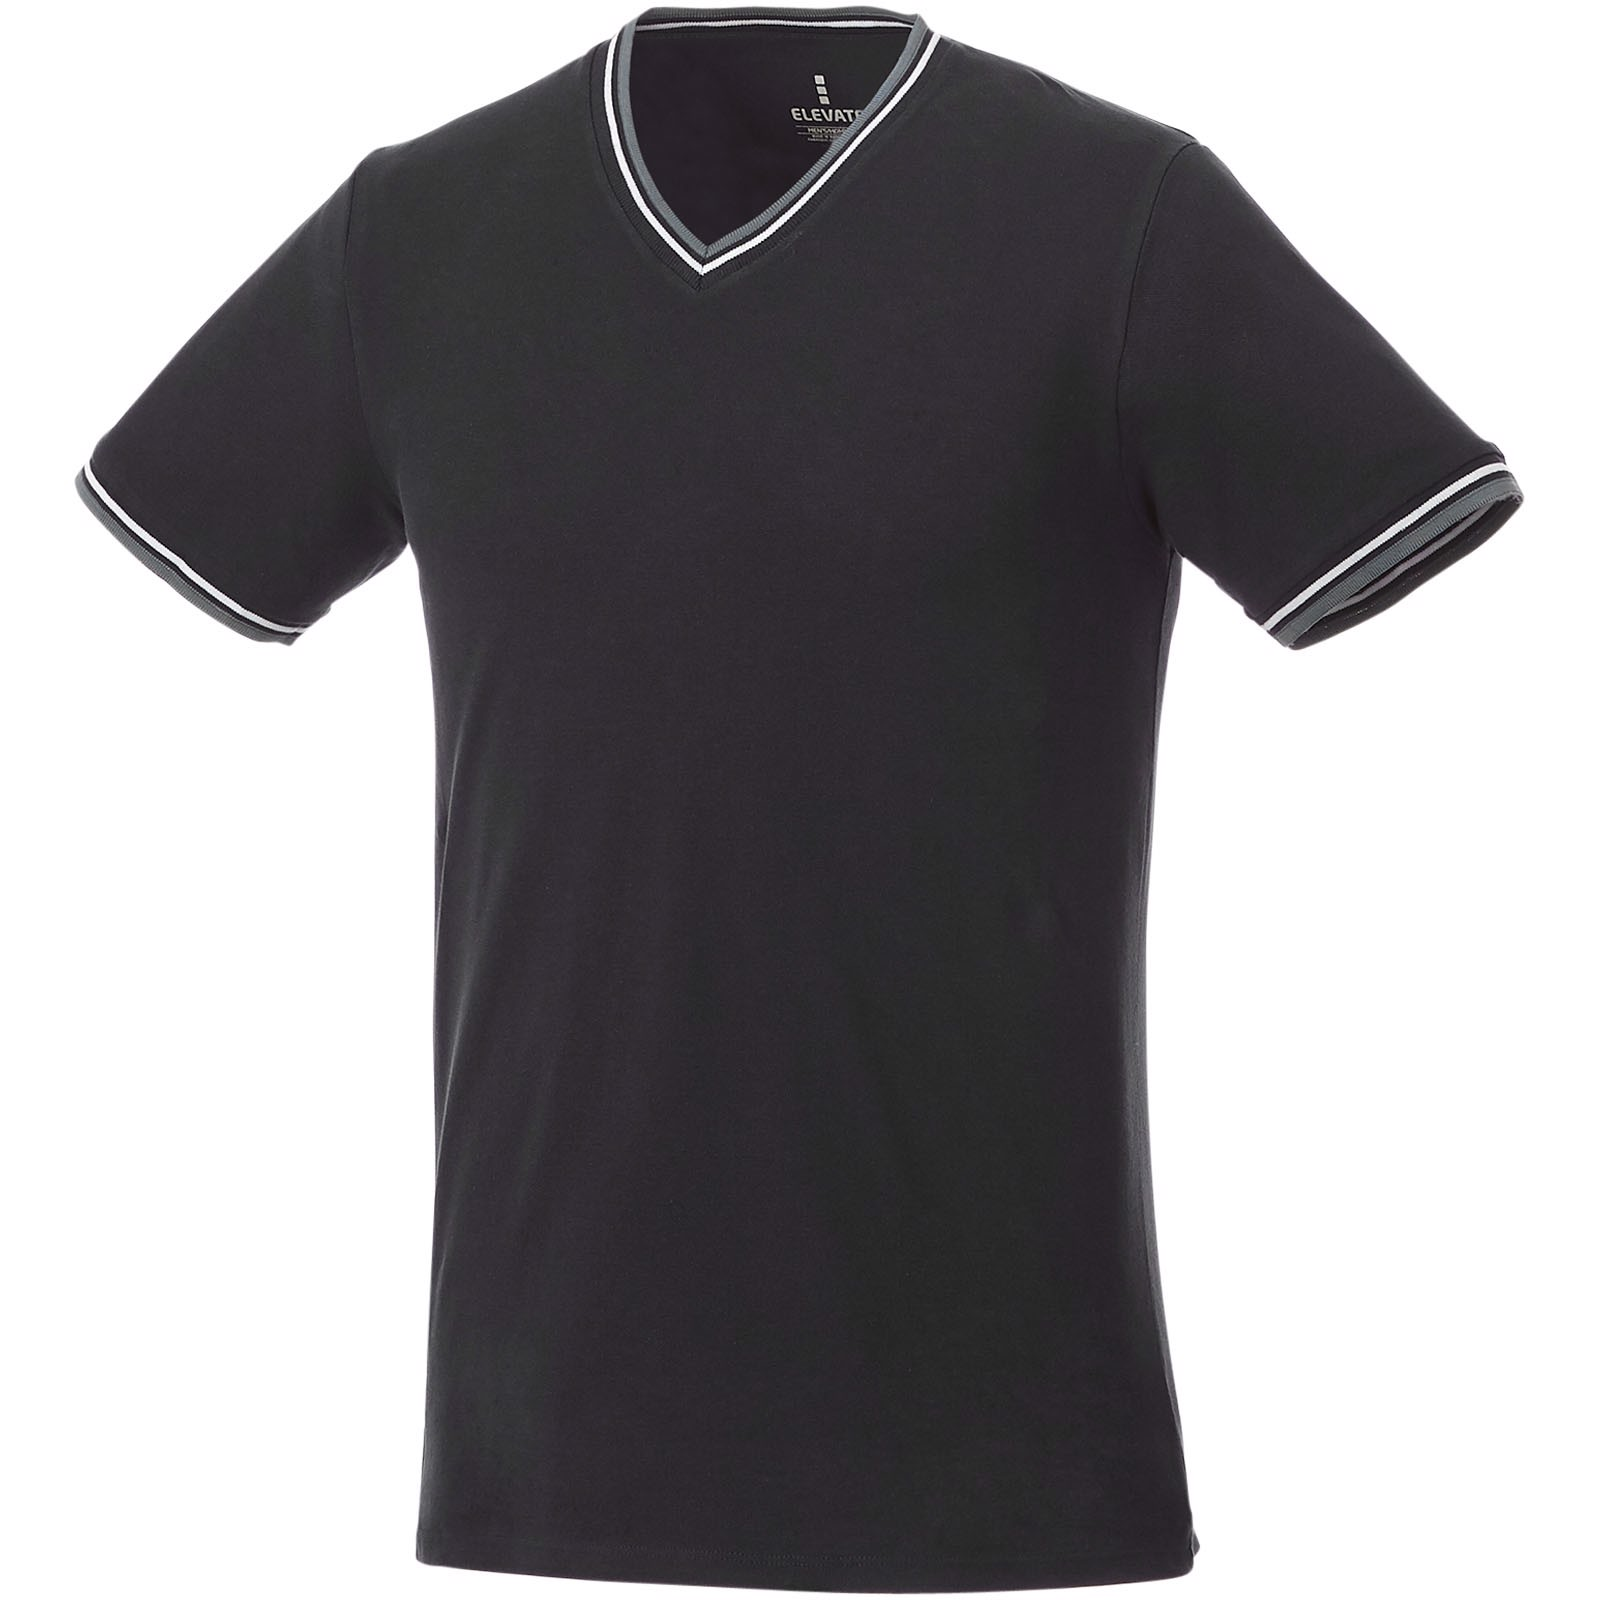 Elbert short sleeve men's pique t-shirt - Solid black / Grey melange / White / XS